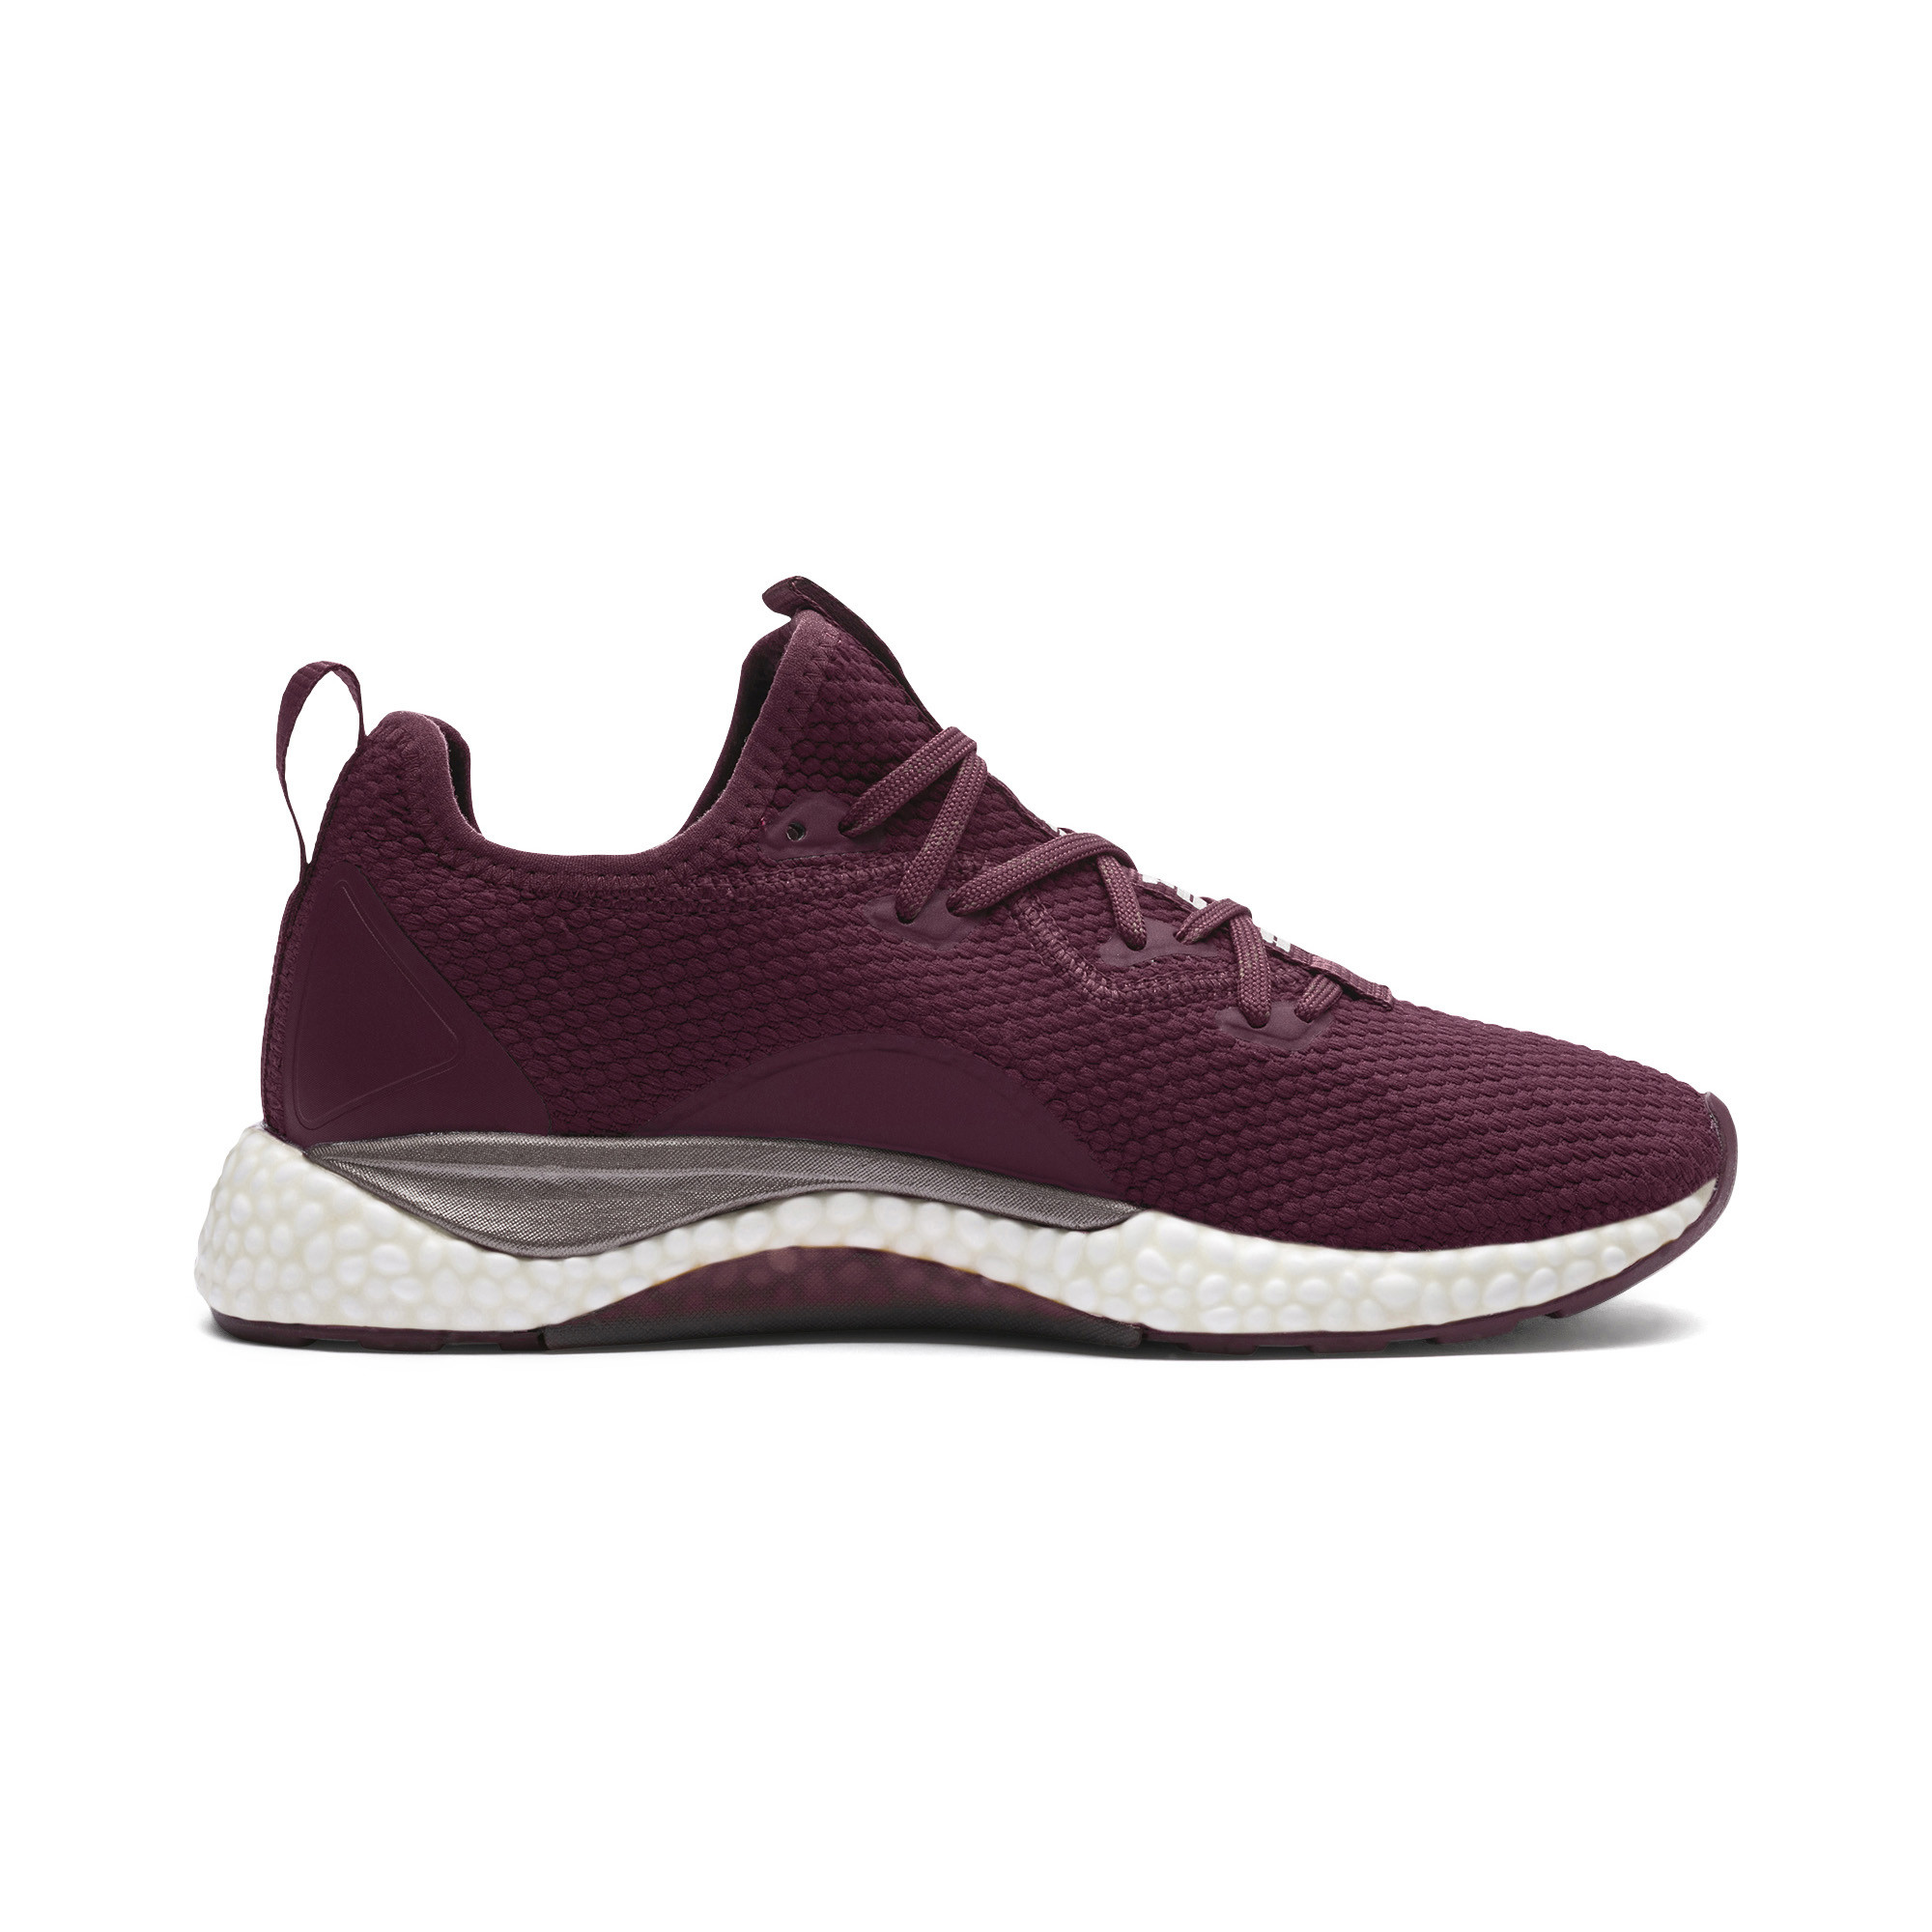 Image Puma Hybrid Runner Luxe Women's Running Shoes #5